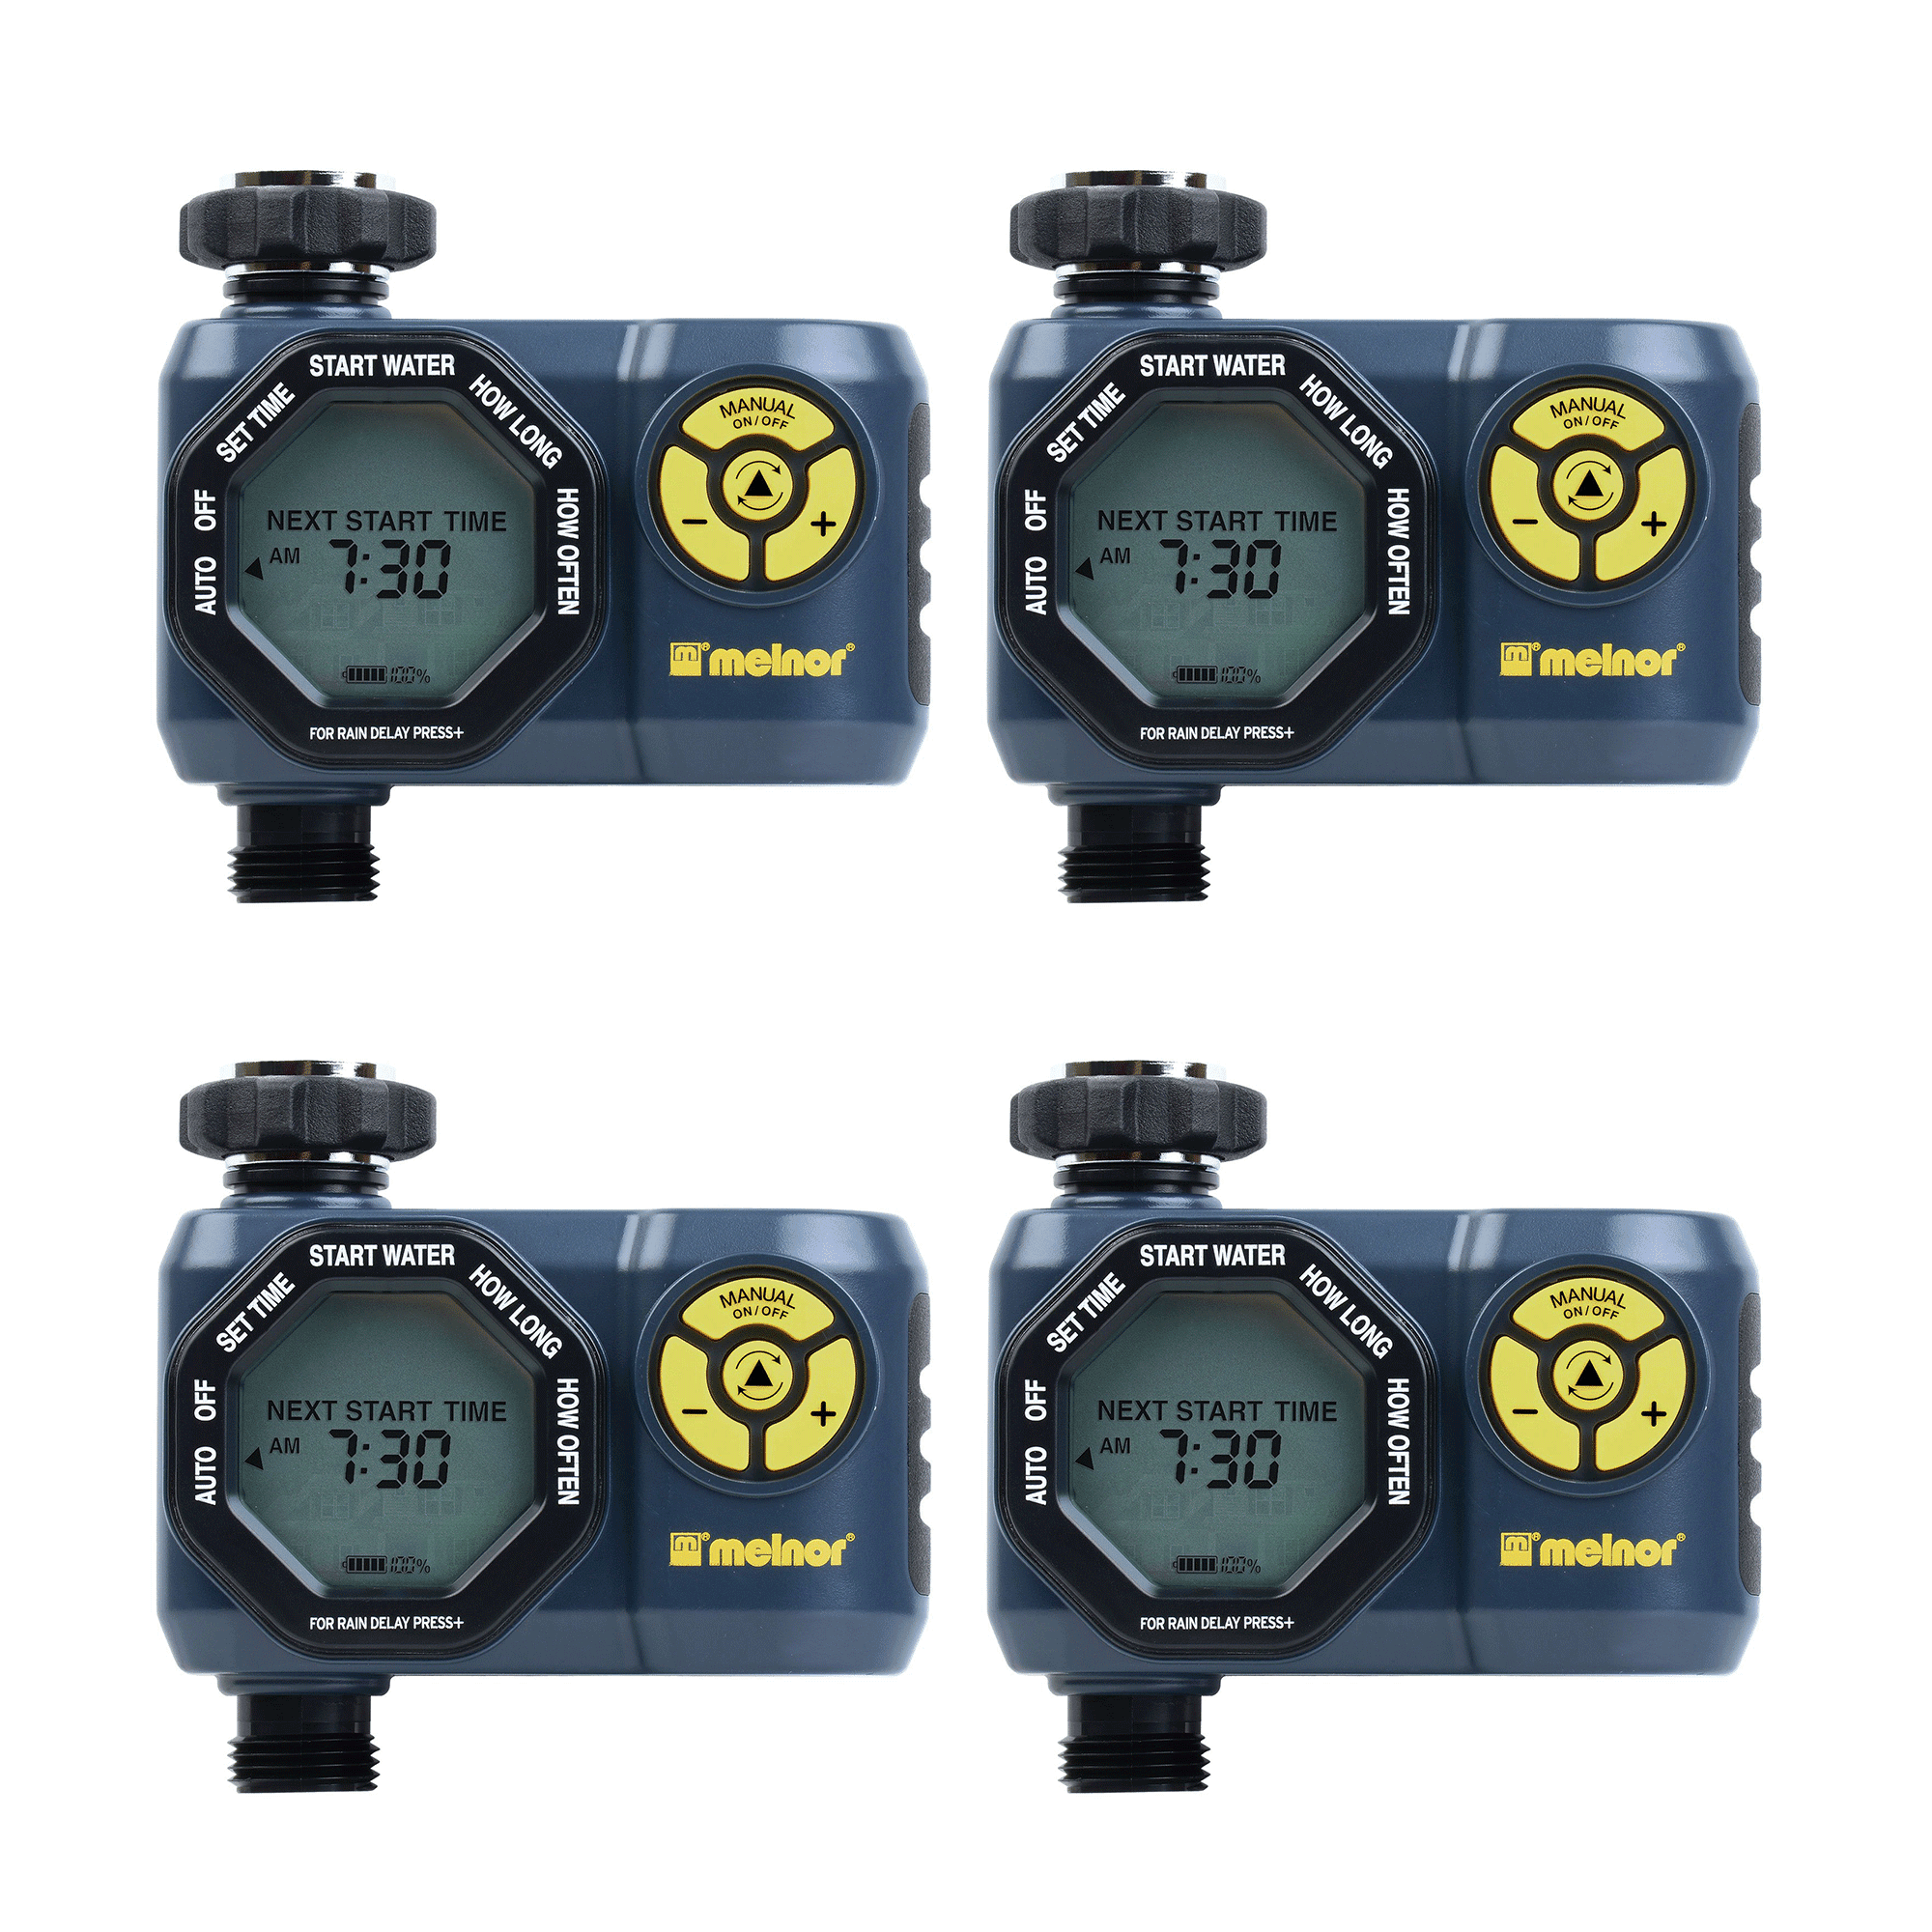 Melnor Digital 1 Zone Programmable Water Timer & Controller for Garden (4 Pack) by Melnor